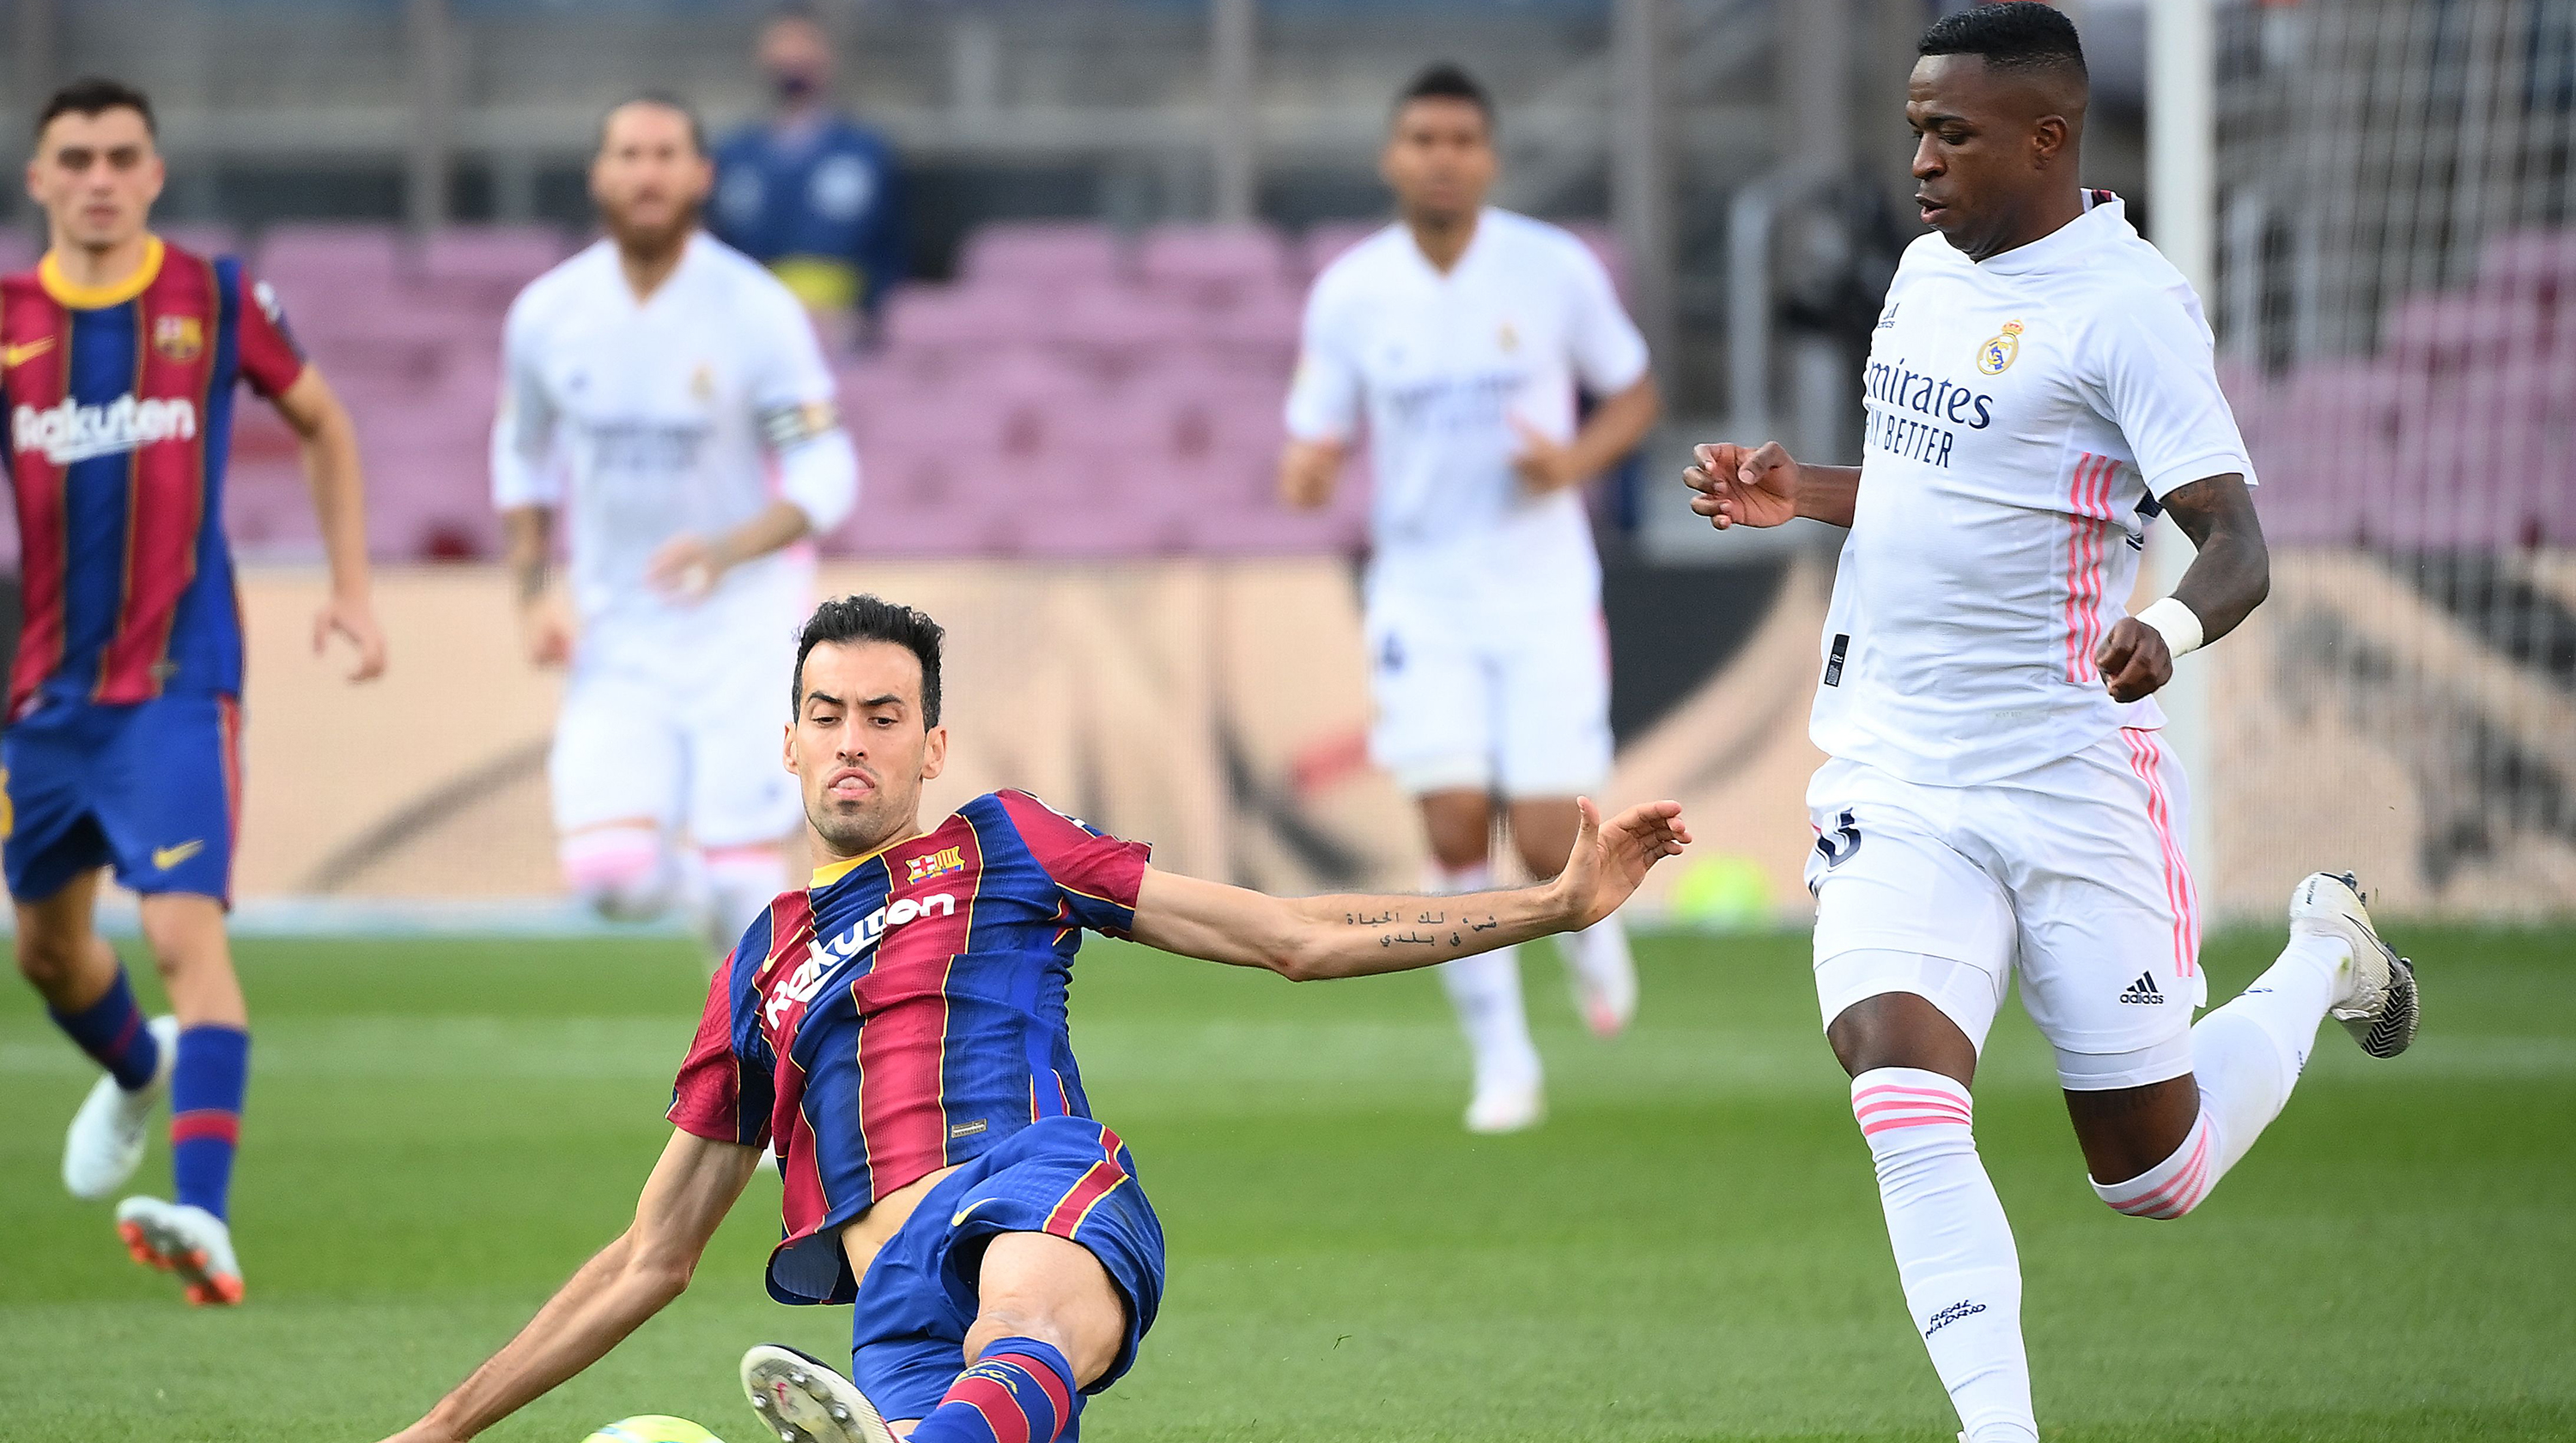 Real Madrid's Brazilian forward Vinicius Junior (R) challenges Barcelona's Spanish midfielder Sergio Busquets during the Spanish League football match between Barcelona and Real Madrid